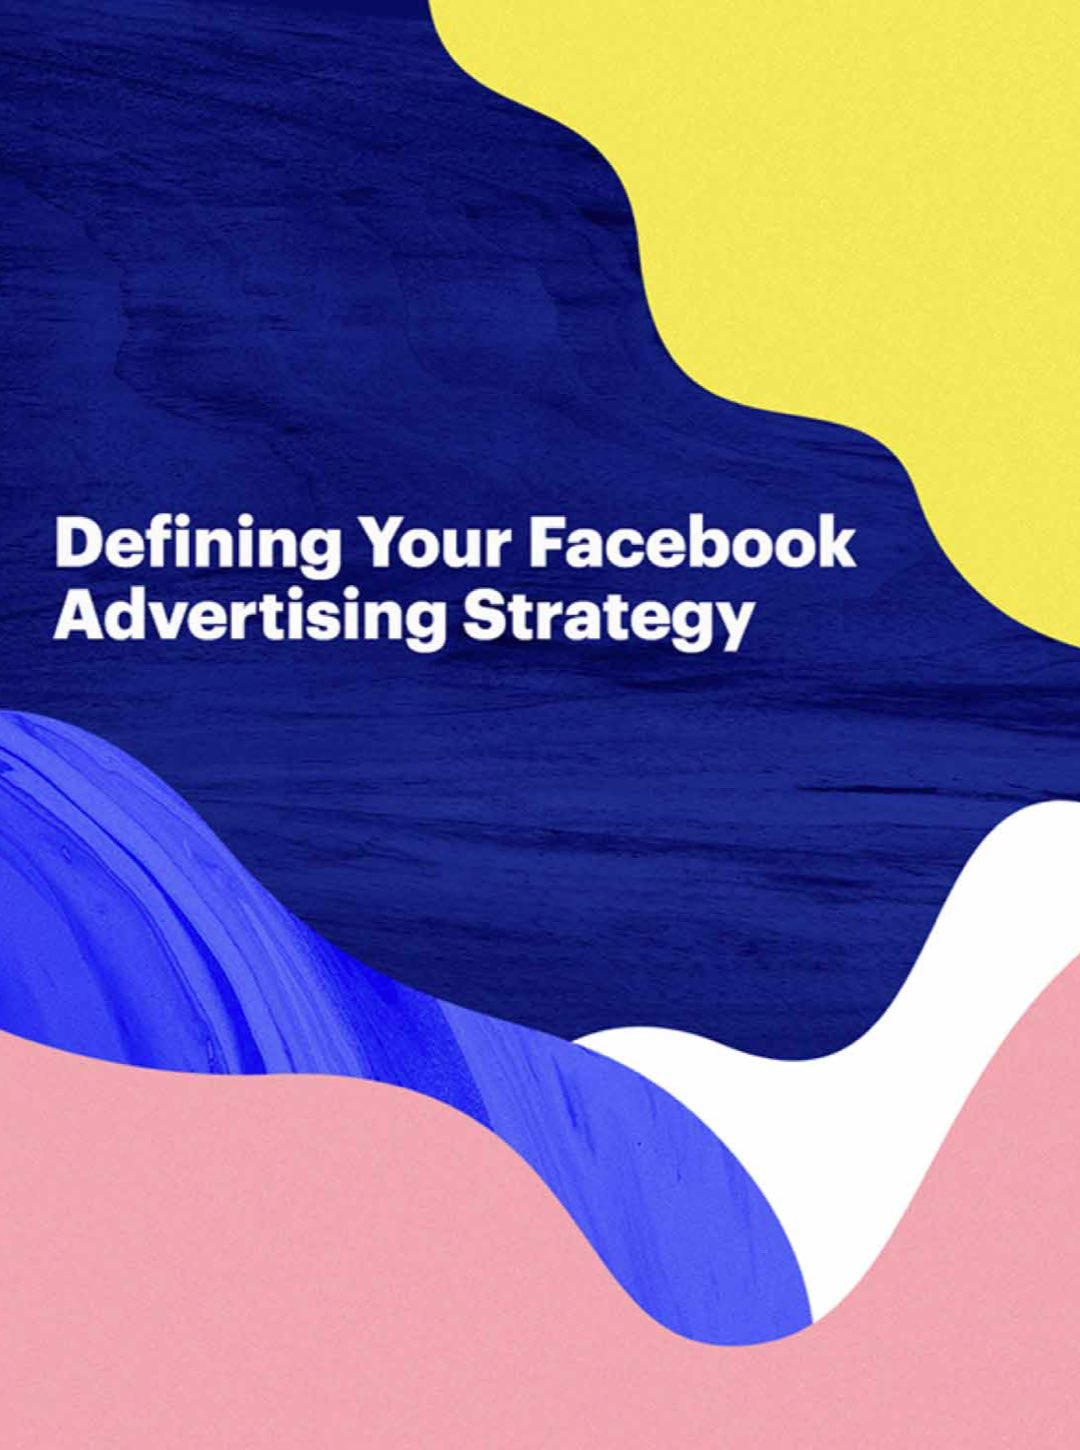 Defining Your Facebook Advertising Strategy